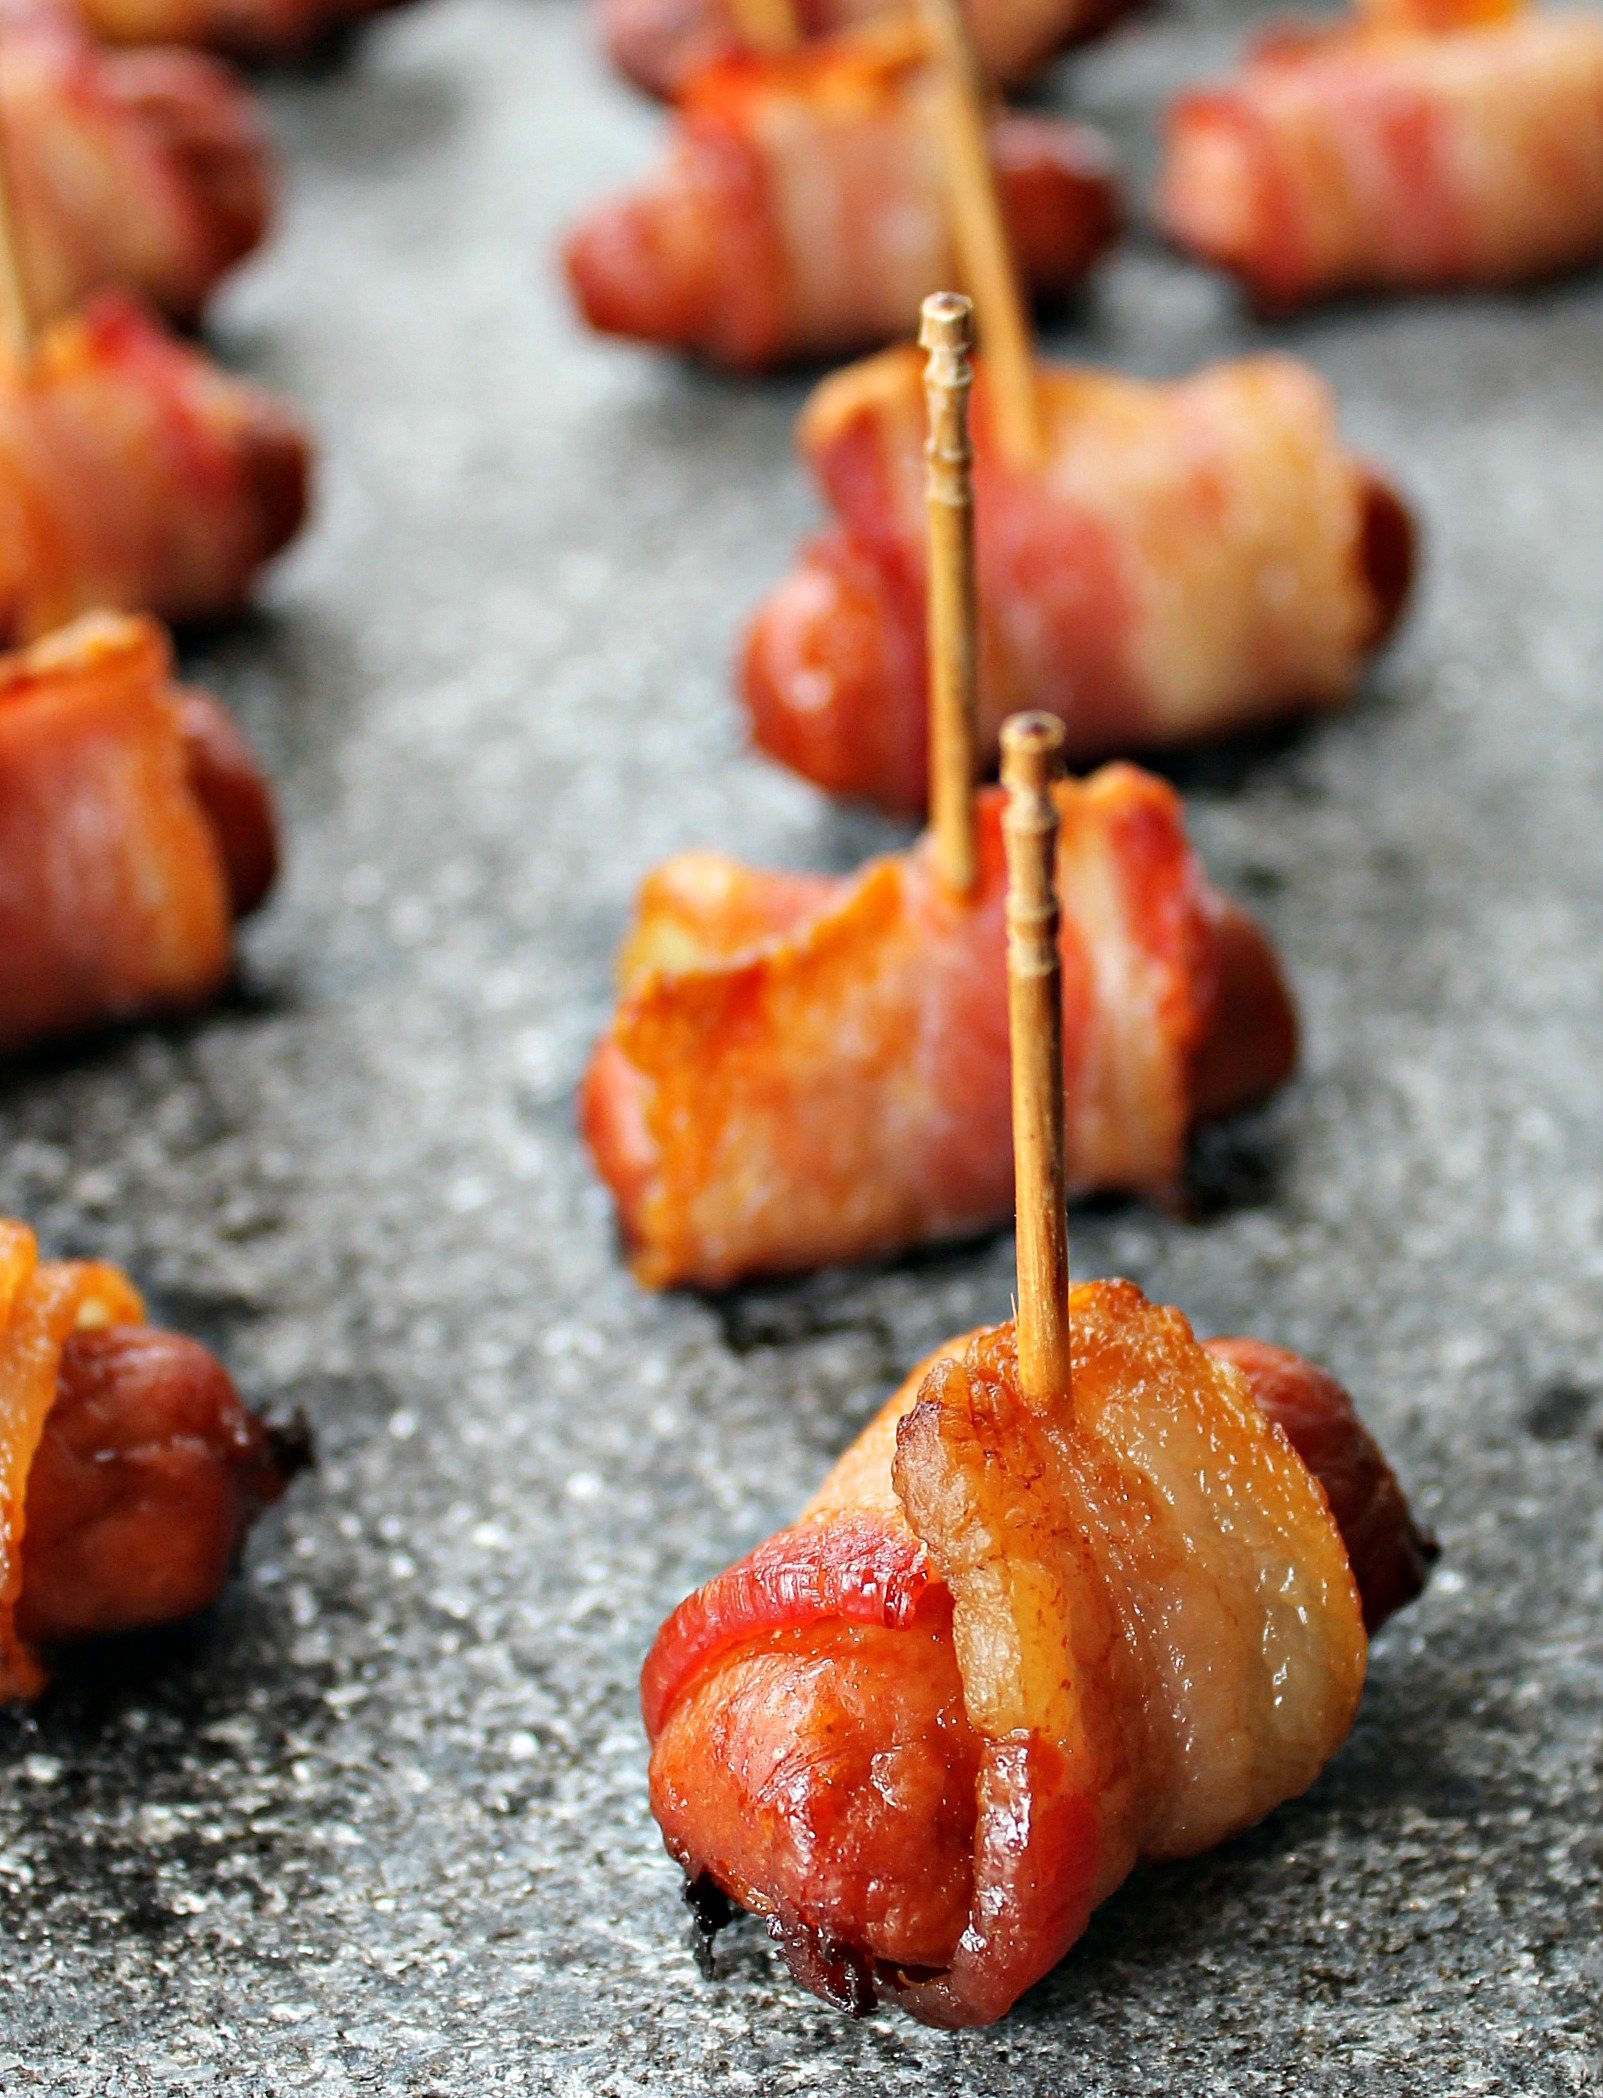 ... style lit l smokies hillshire farm bacon wrapped lit l smokies